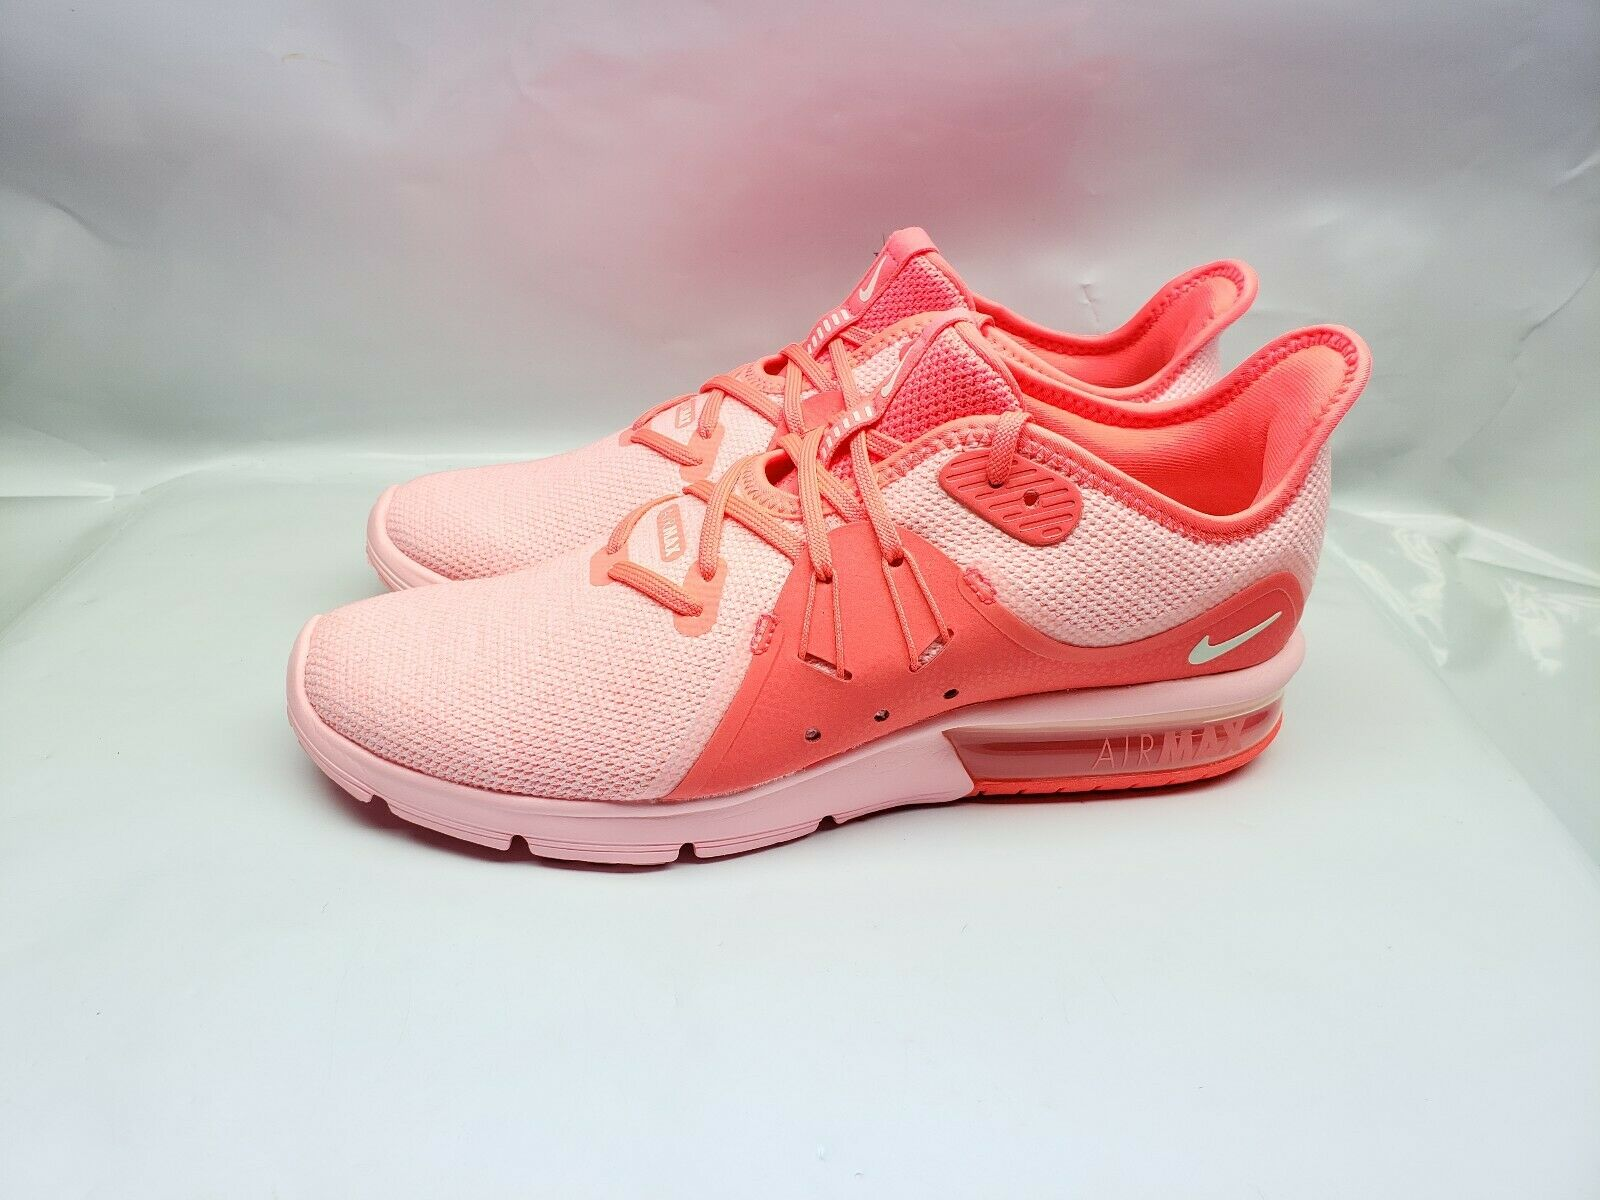 Nike Air Max Sequent 3 Women's Running shoes Size 9.5 Hot Punch Pink 908993 601